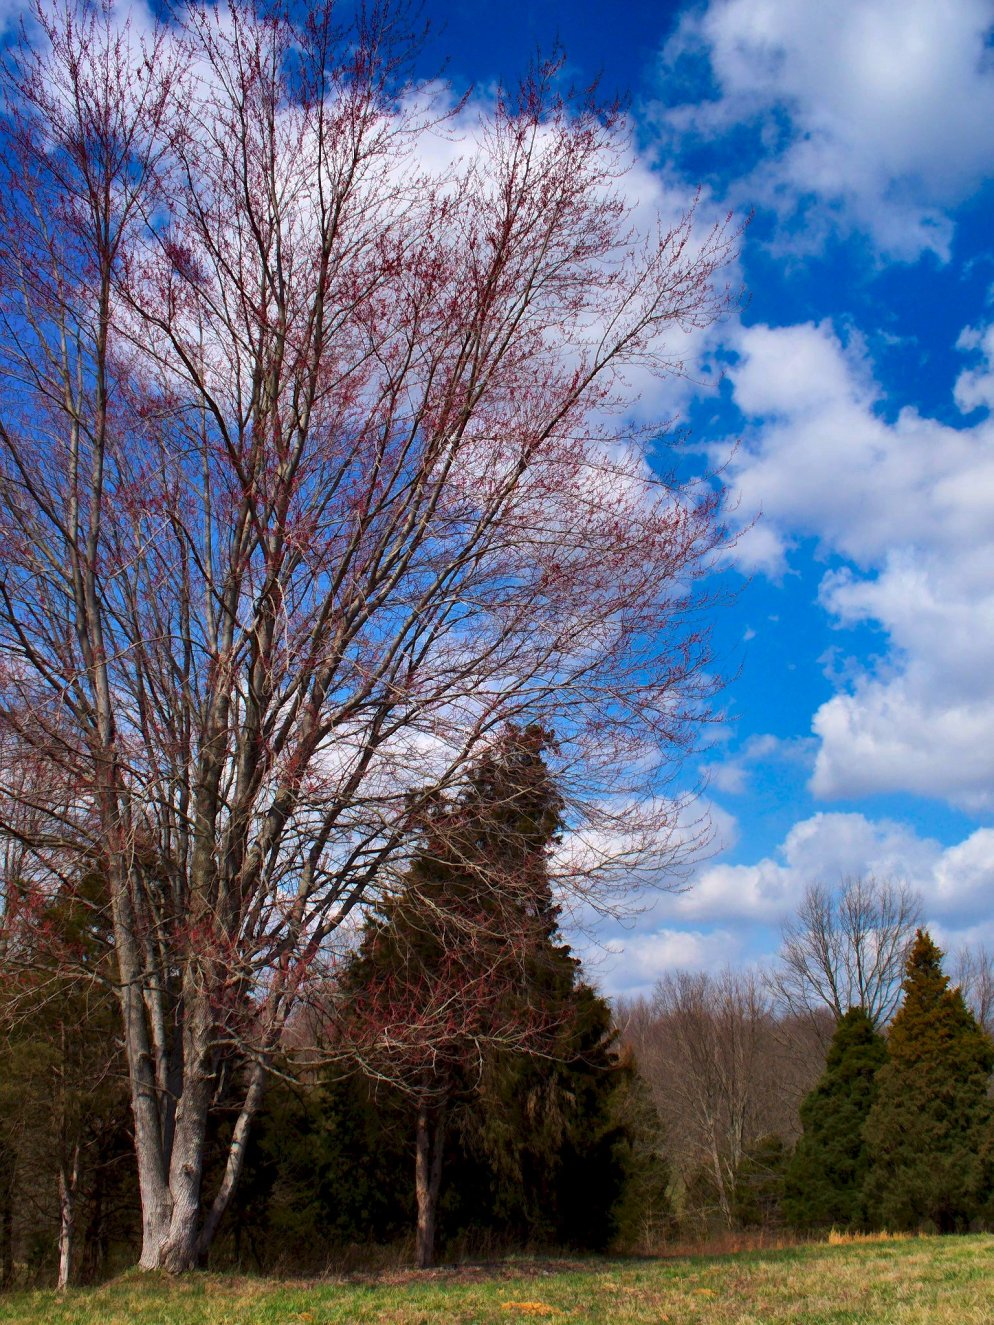 budding tree and march landscape with clouds and blue sky